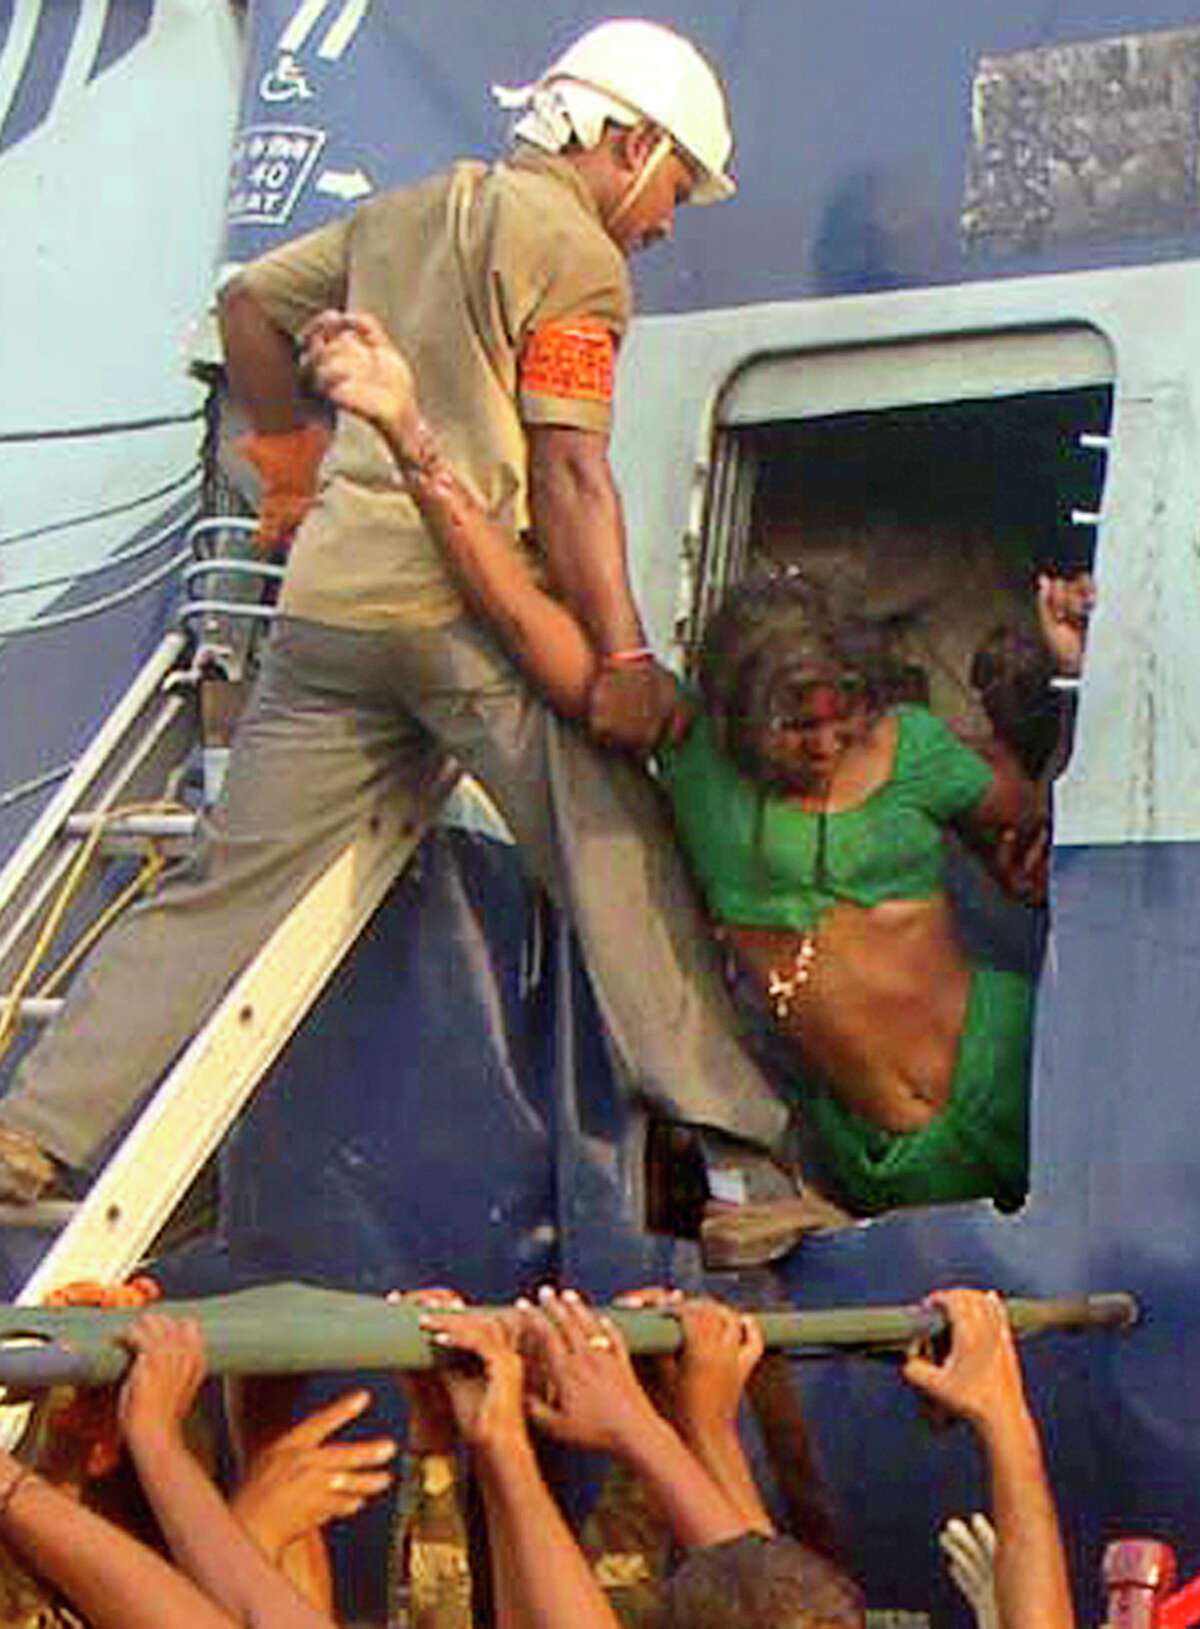 ALTERNATE CROP OF DEL114 - Rescuers evacuate an injured woman from the site of a train accident at a station near Penukonda, about 170 kilometers (105 miles) north of Bangalore, India, Tuesday, May 22, 2012. The passenger train rammed into a parked freight train and burst into flames before dawn Tuesday, killing more than a dozen people in southern India, officials said.